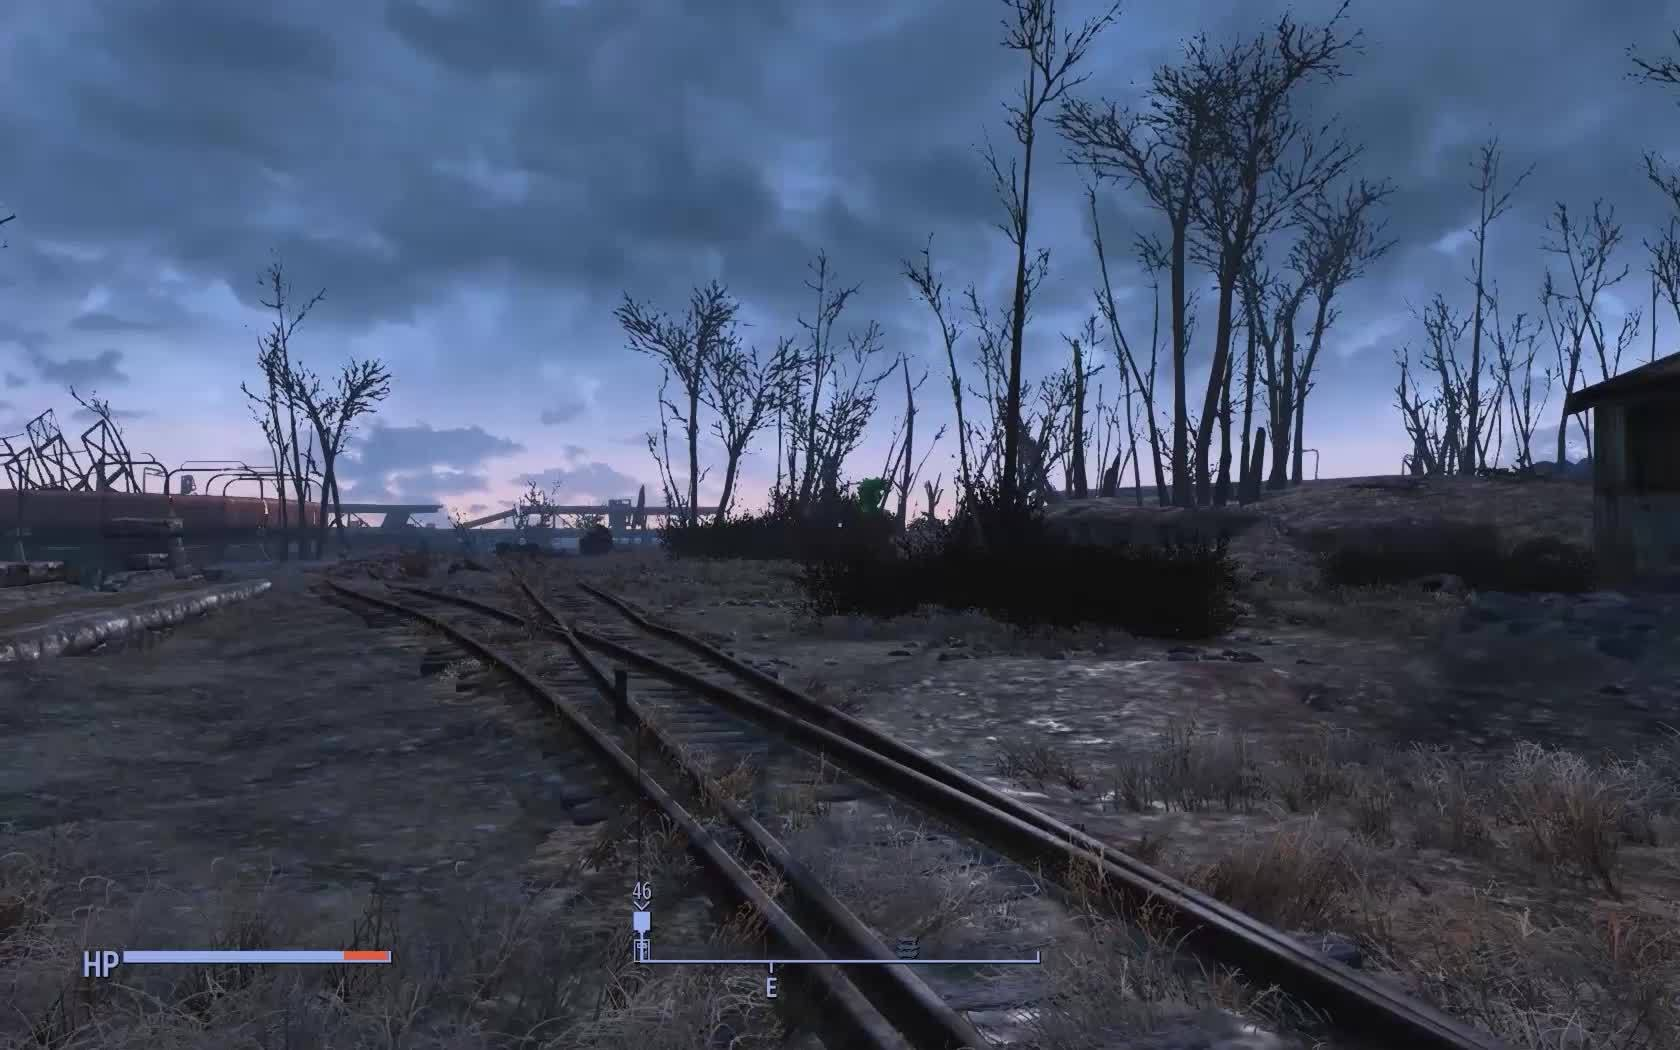 fo4, How to deal with 2 glowing deathclaw at the same time. (reddit) GIFs